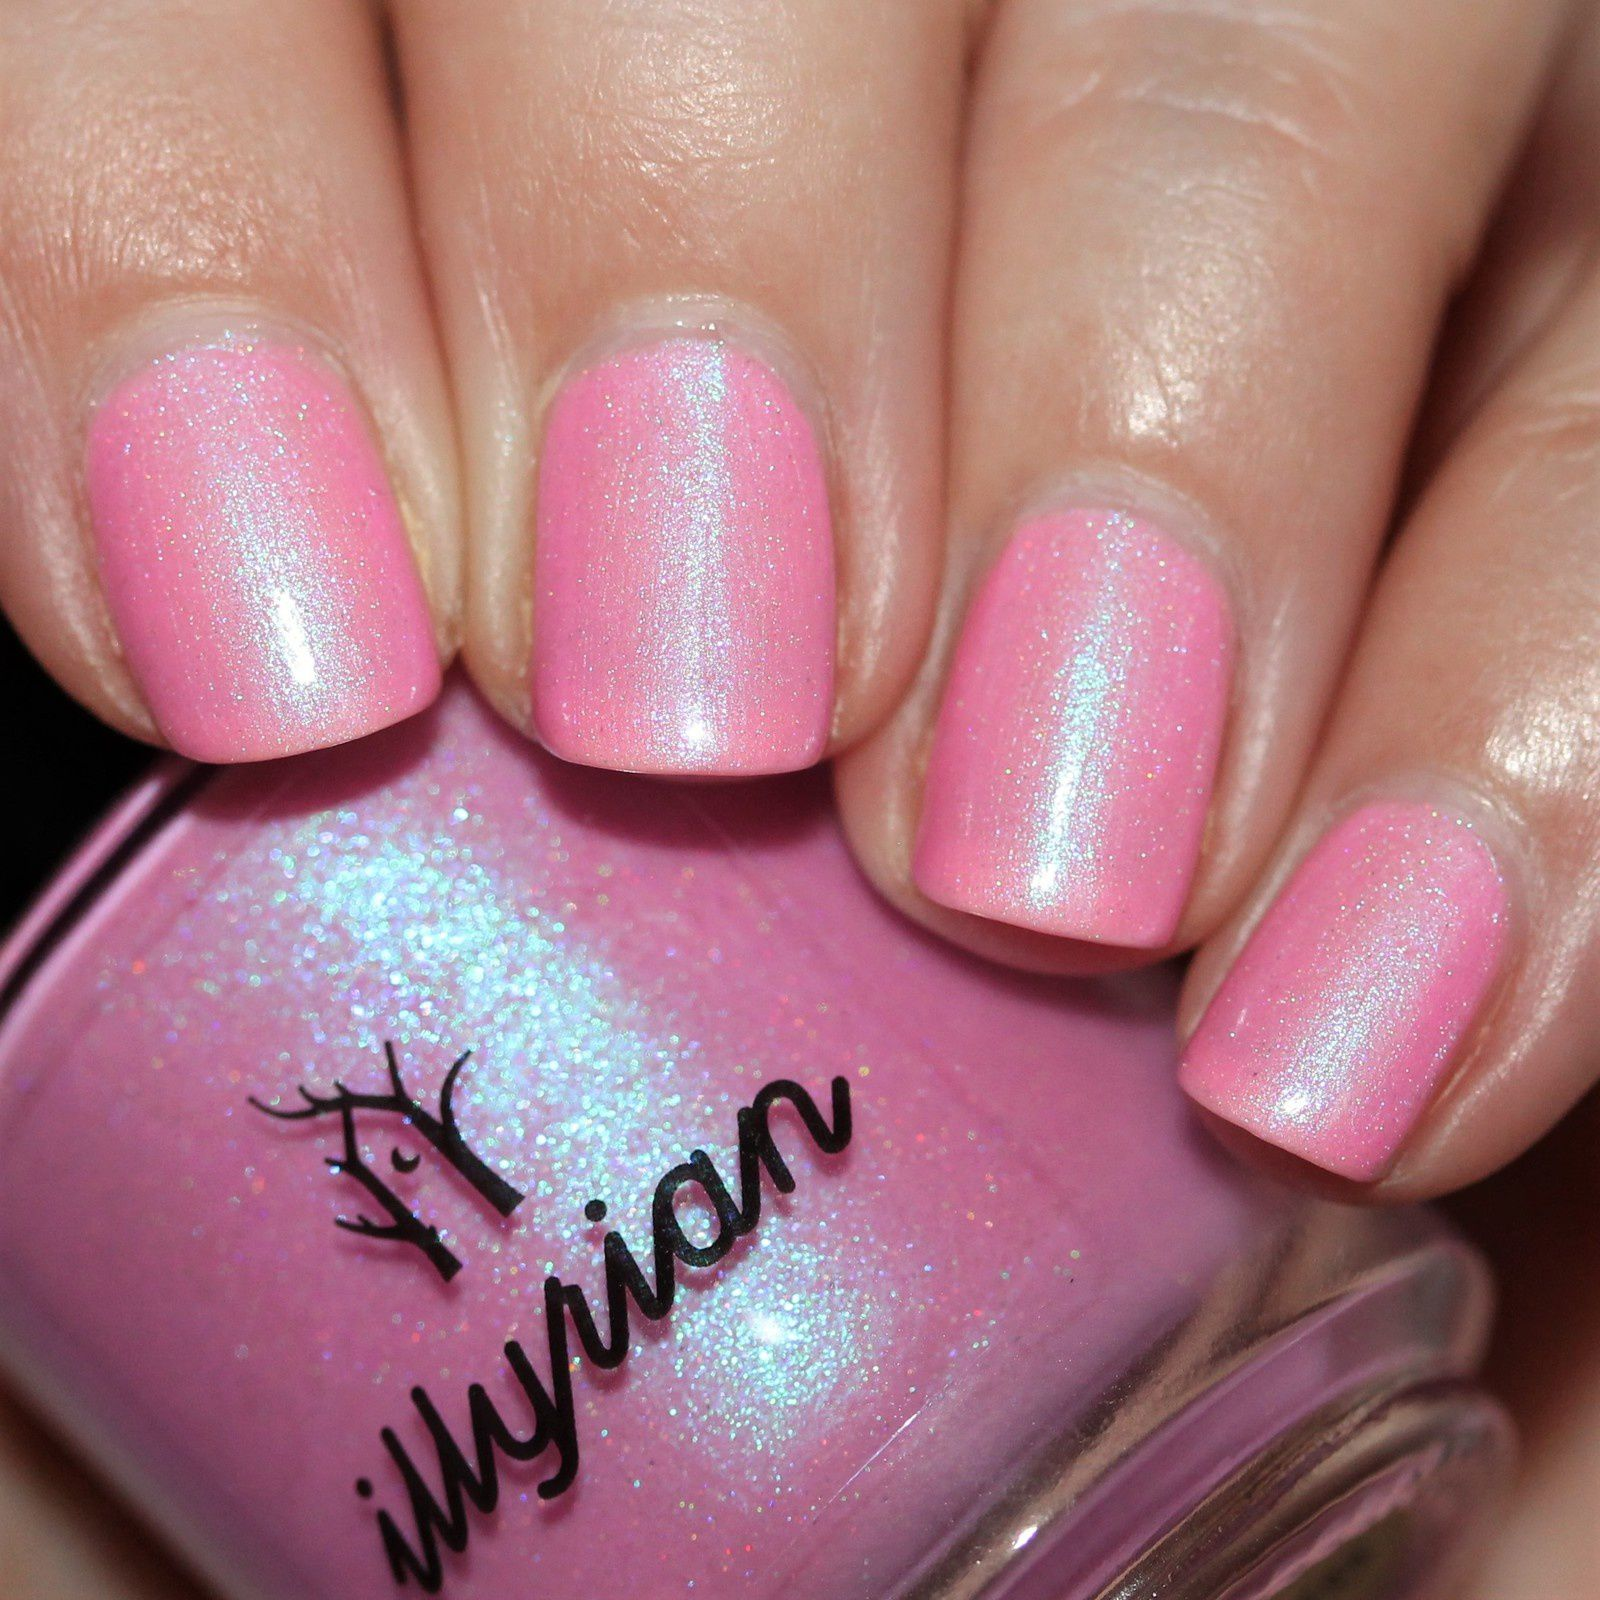 Essie Protein Base Coat / Illyrian Polish Afterglow / HK Girl Top Coat